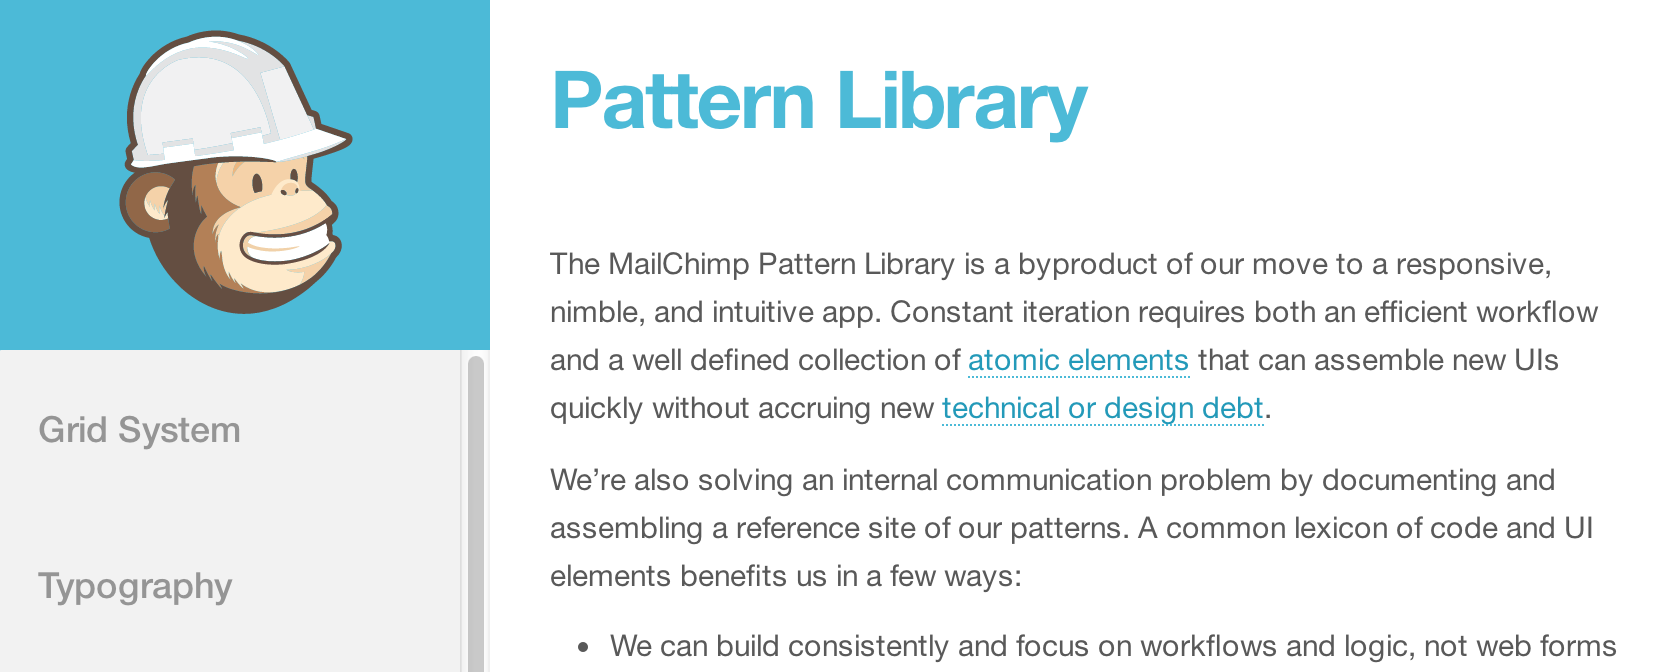 Pattern_Library___MailChimp